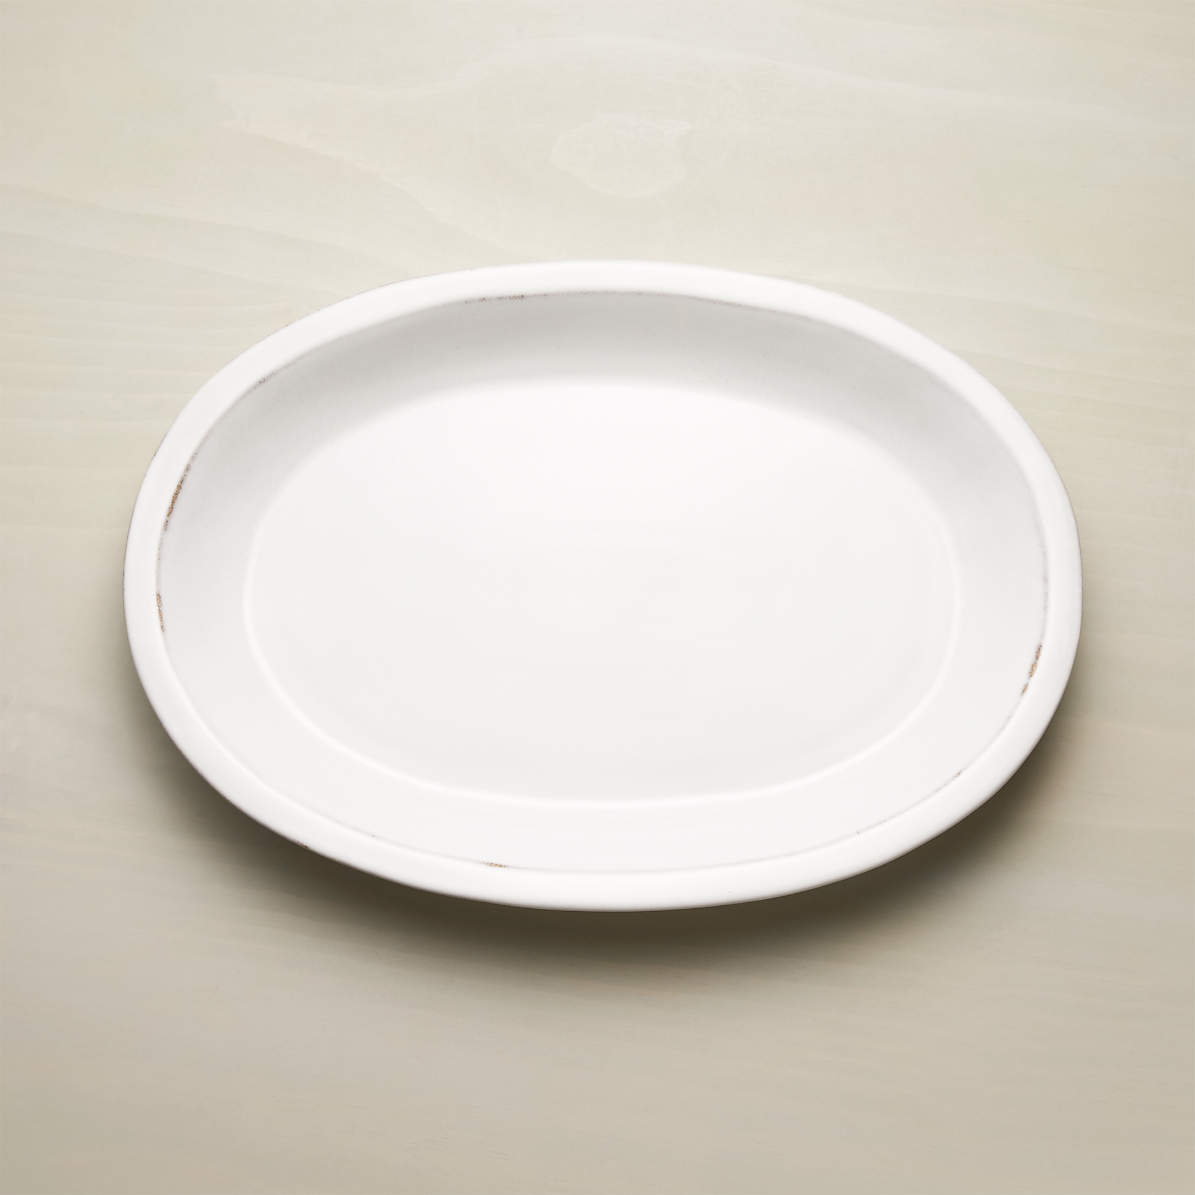 Marbury Small Oval Platter Reviews Crate And Barrel